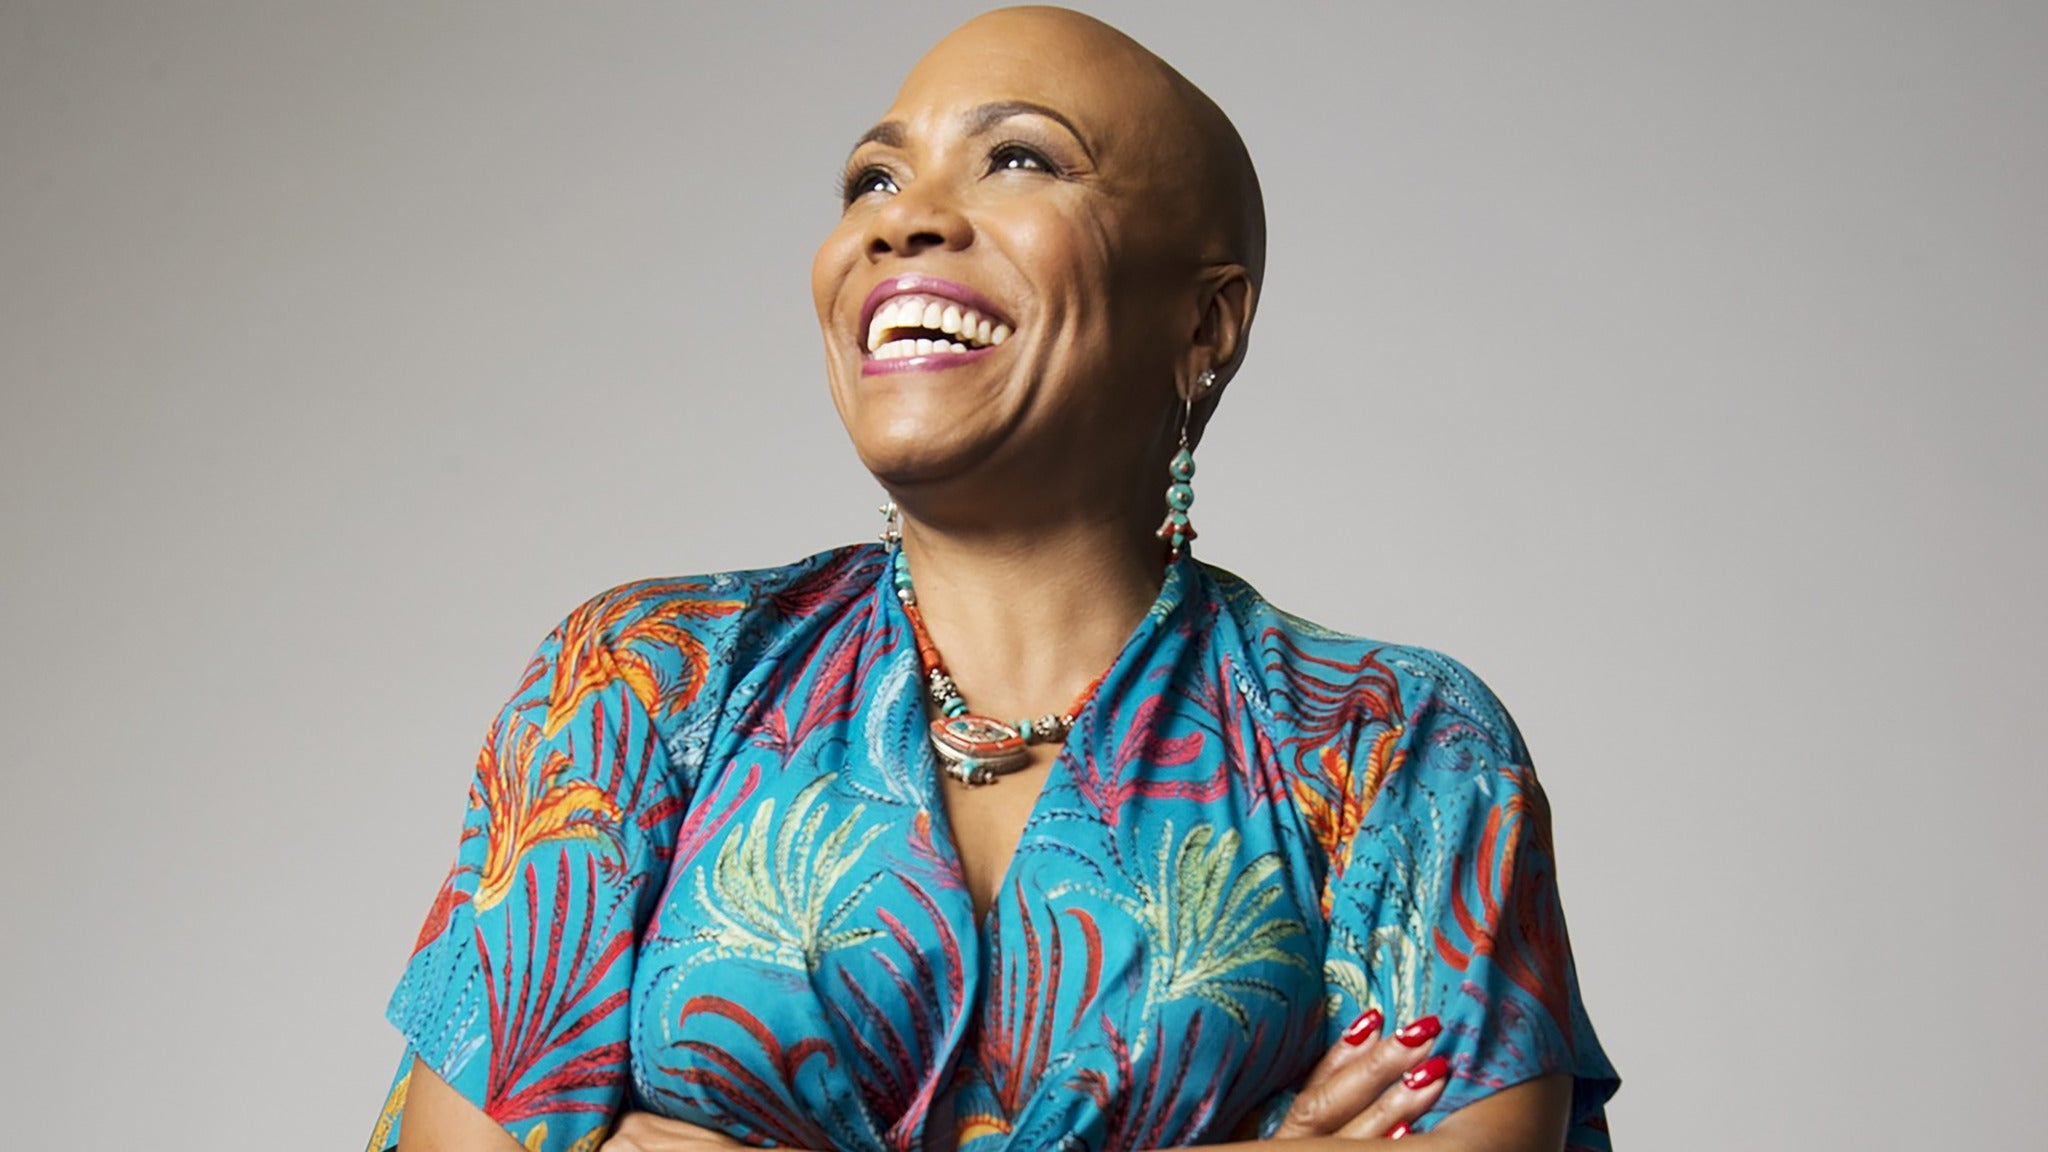 Dee Dee Bridgewater at Blue Note Hawaii - Honolulu, HI 96815